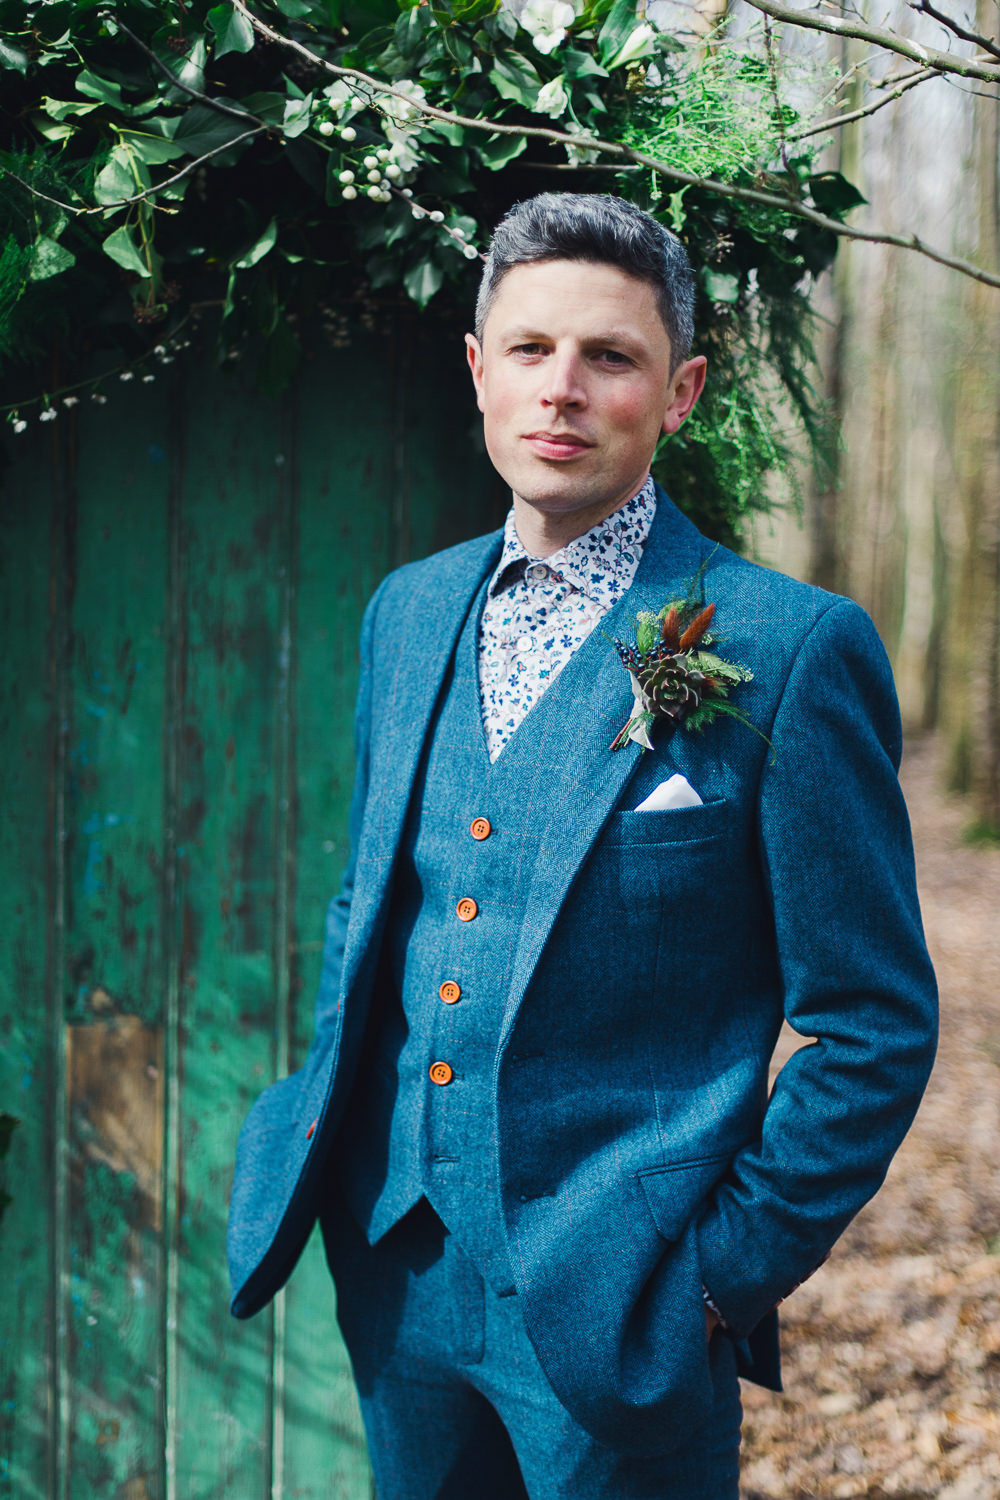 Groom Blue Suit Waistcoat Floral Shirt Nordic Woodland Elopement Wedding Ideas Nina Wernicke Photography